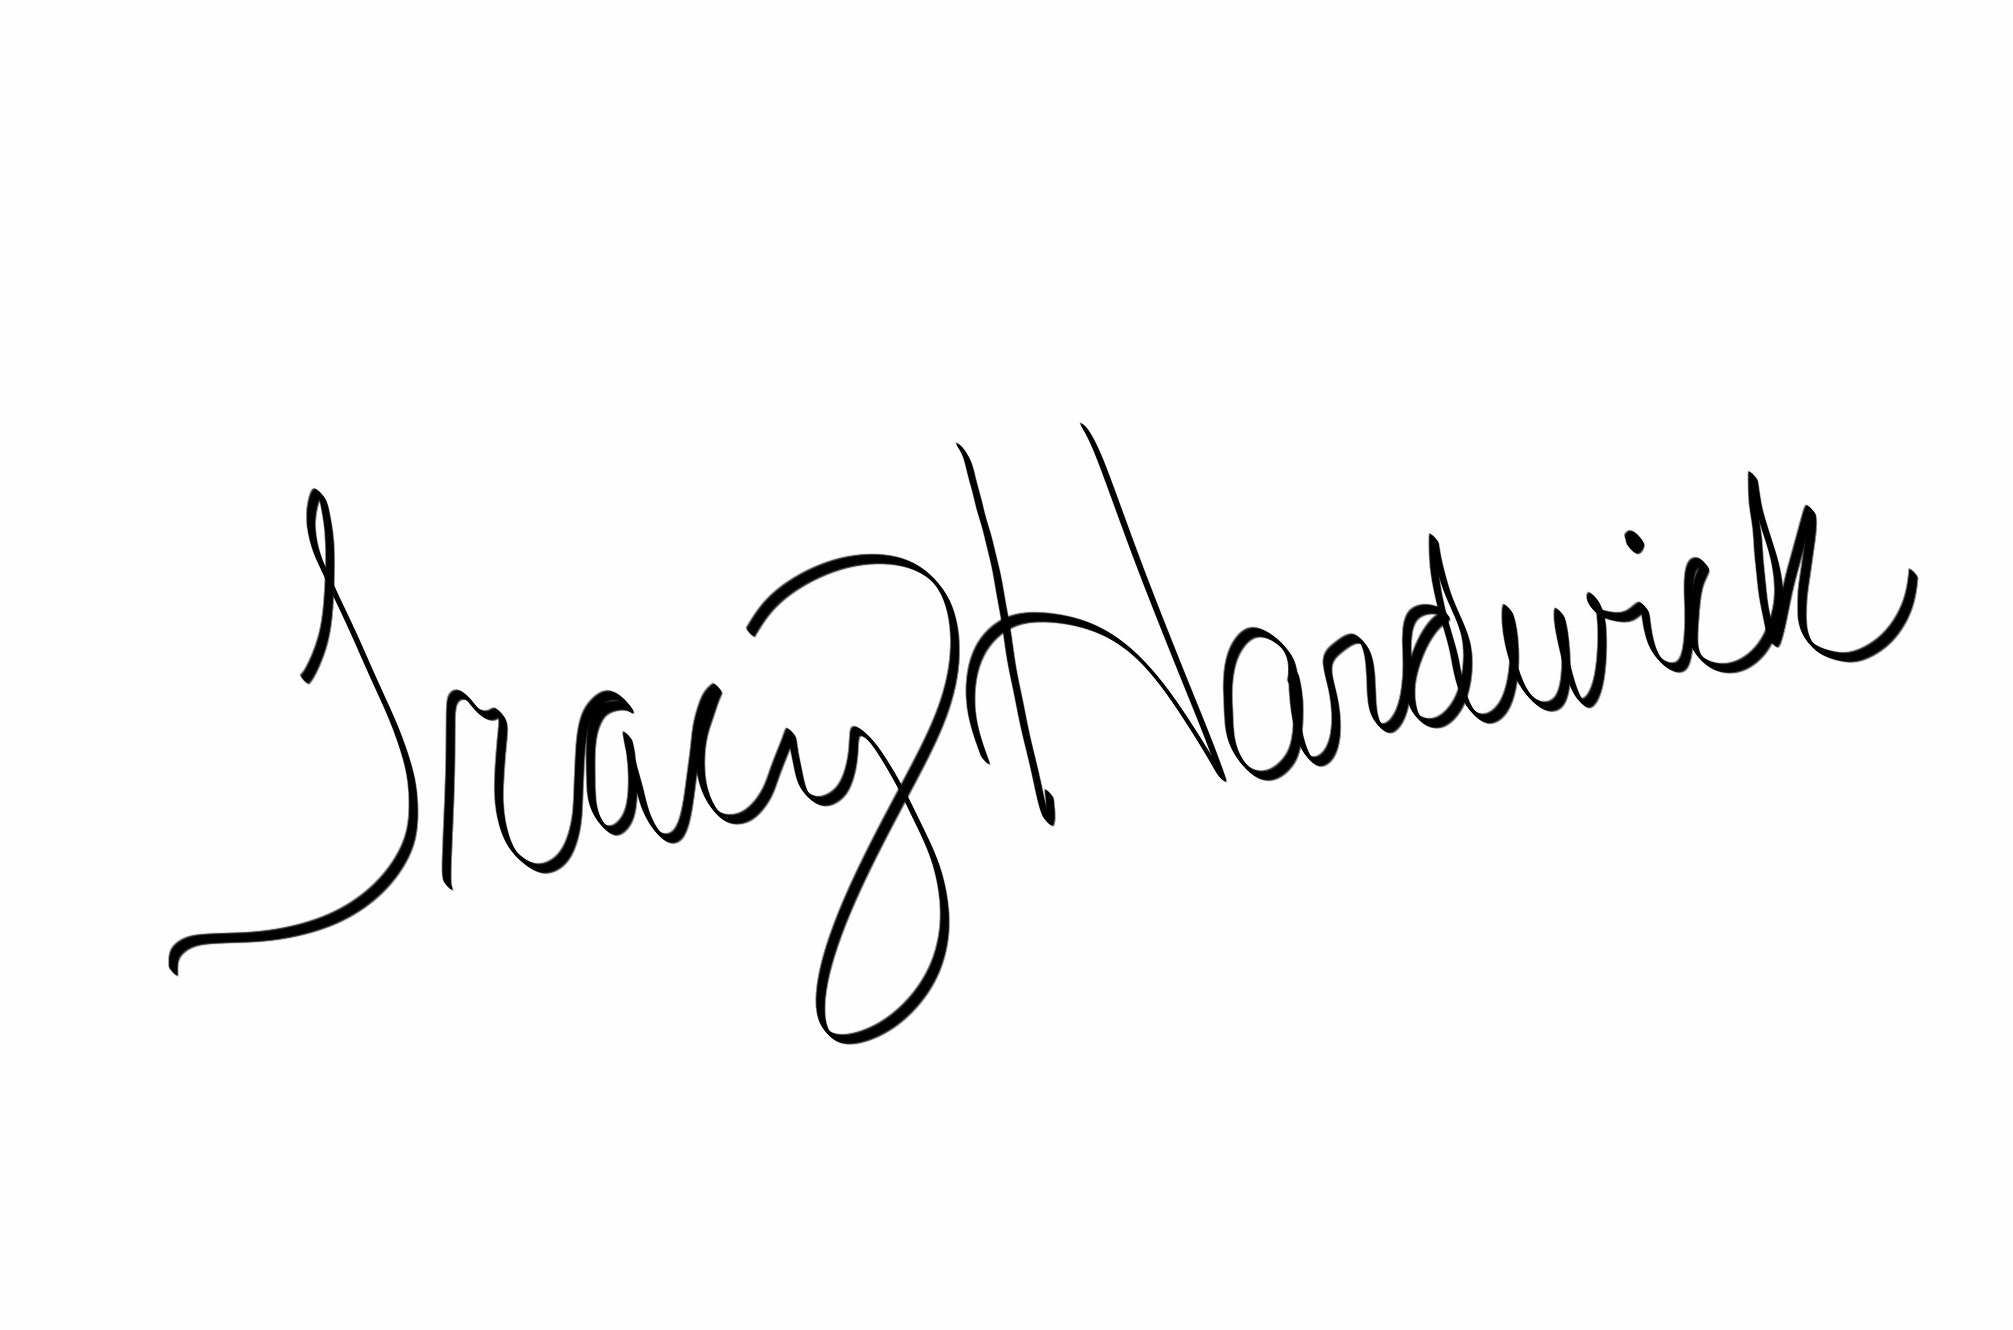 Tracy Hardwick Signature